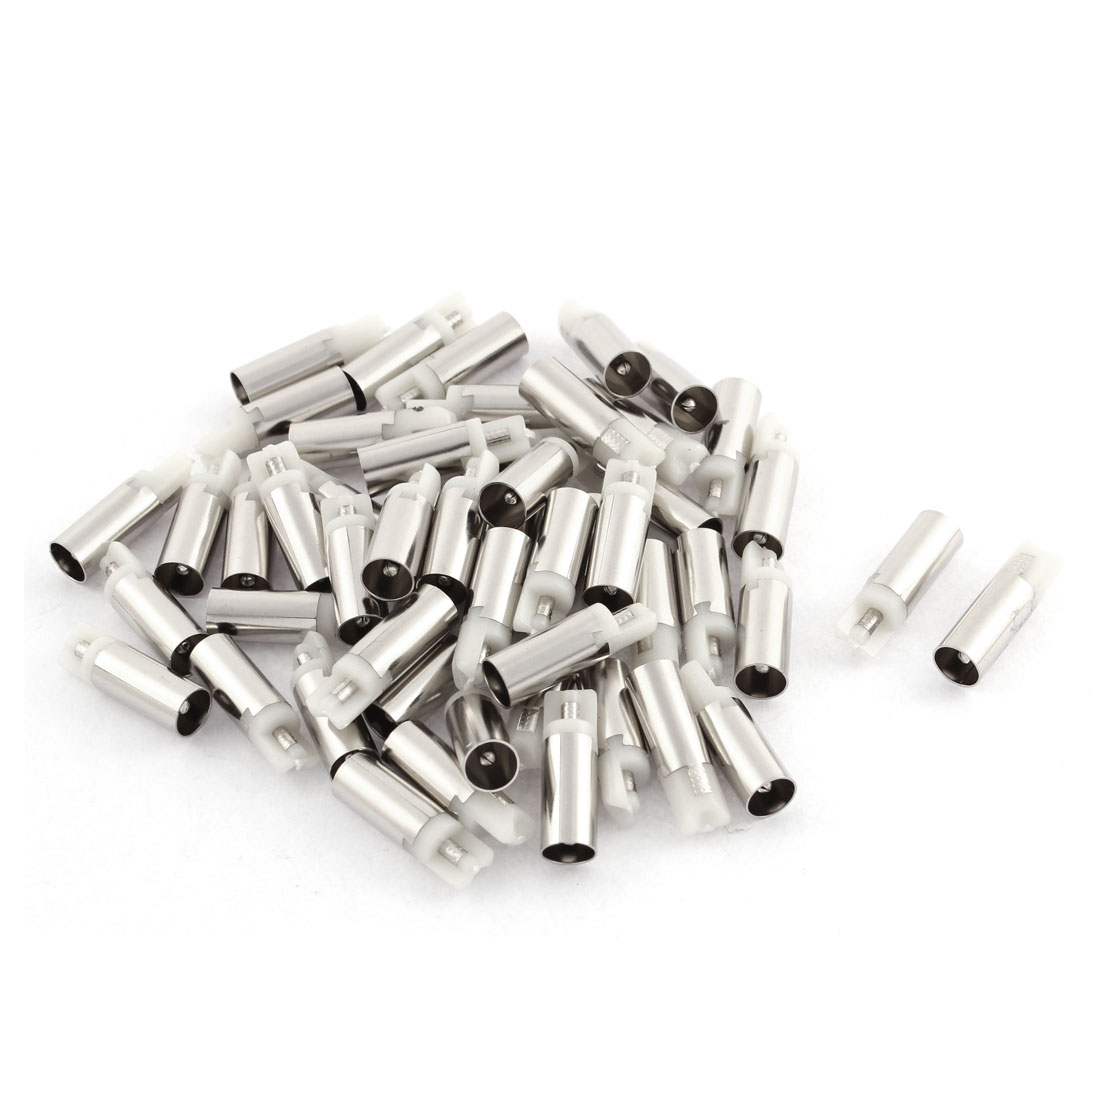 50Pcs 5.5mm x 2.1mm Female DC Power Jack Solder Connector Silver Tone